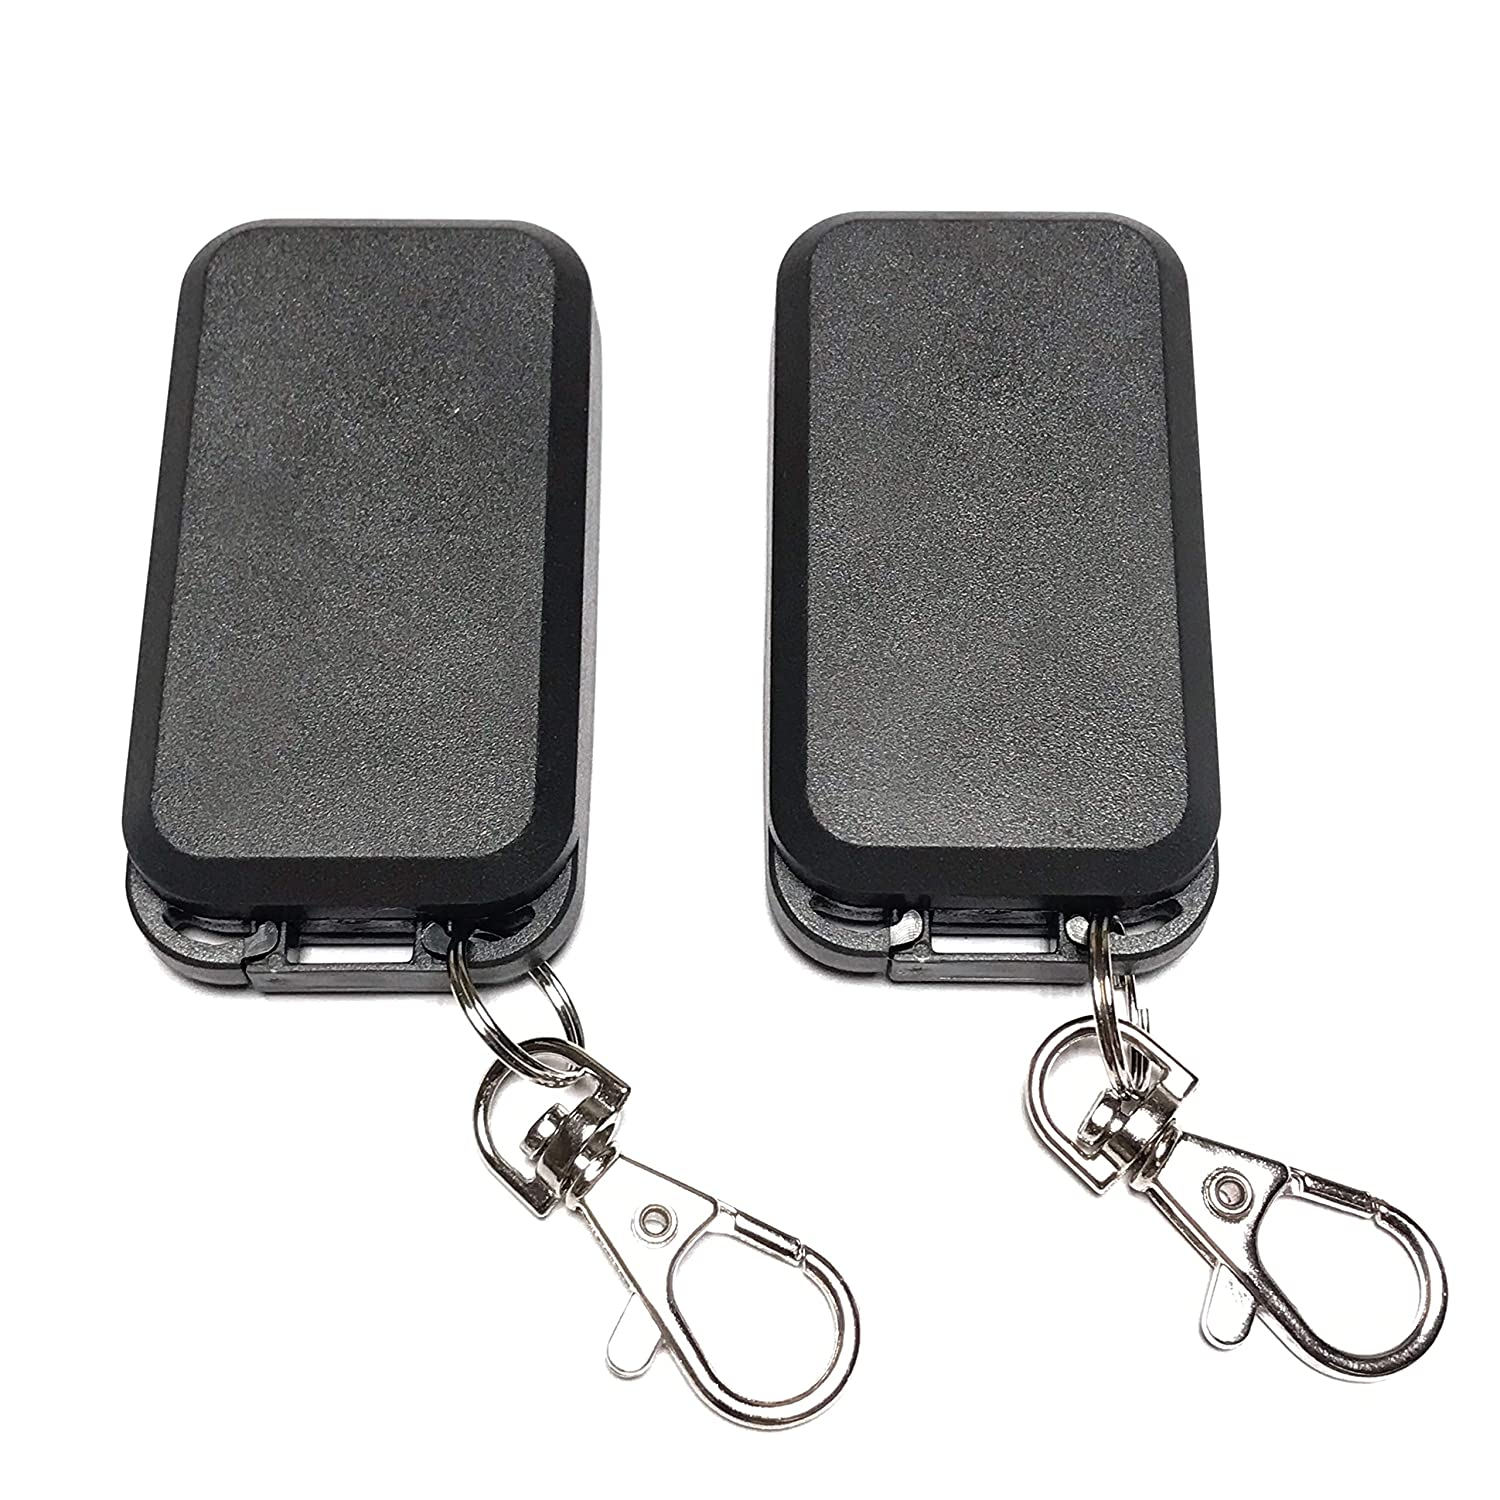 2 Pack For LiftMaster 890max Mini Key Chain Garage Door